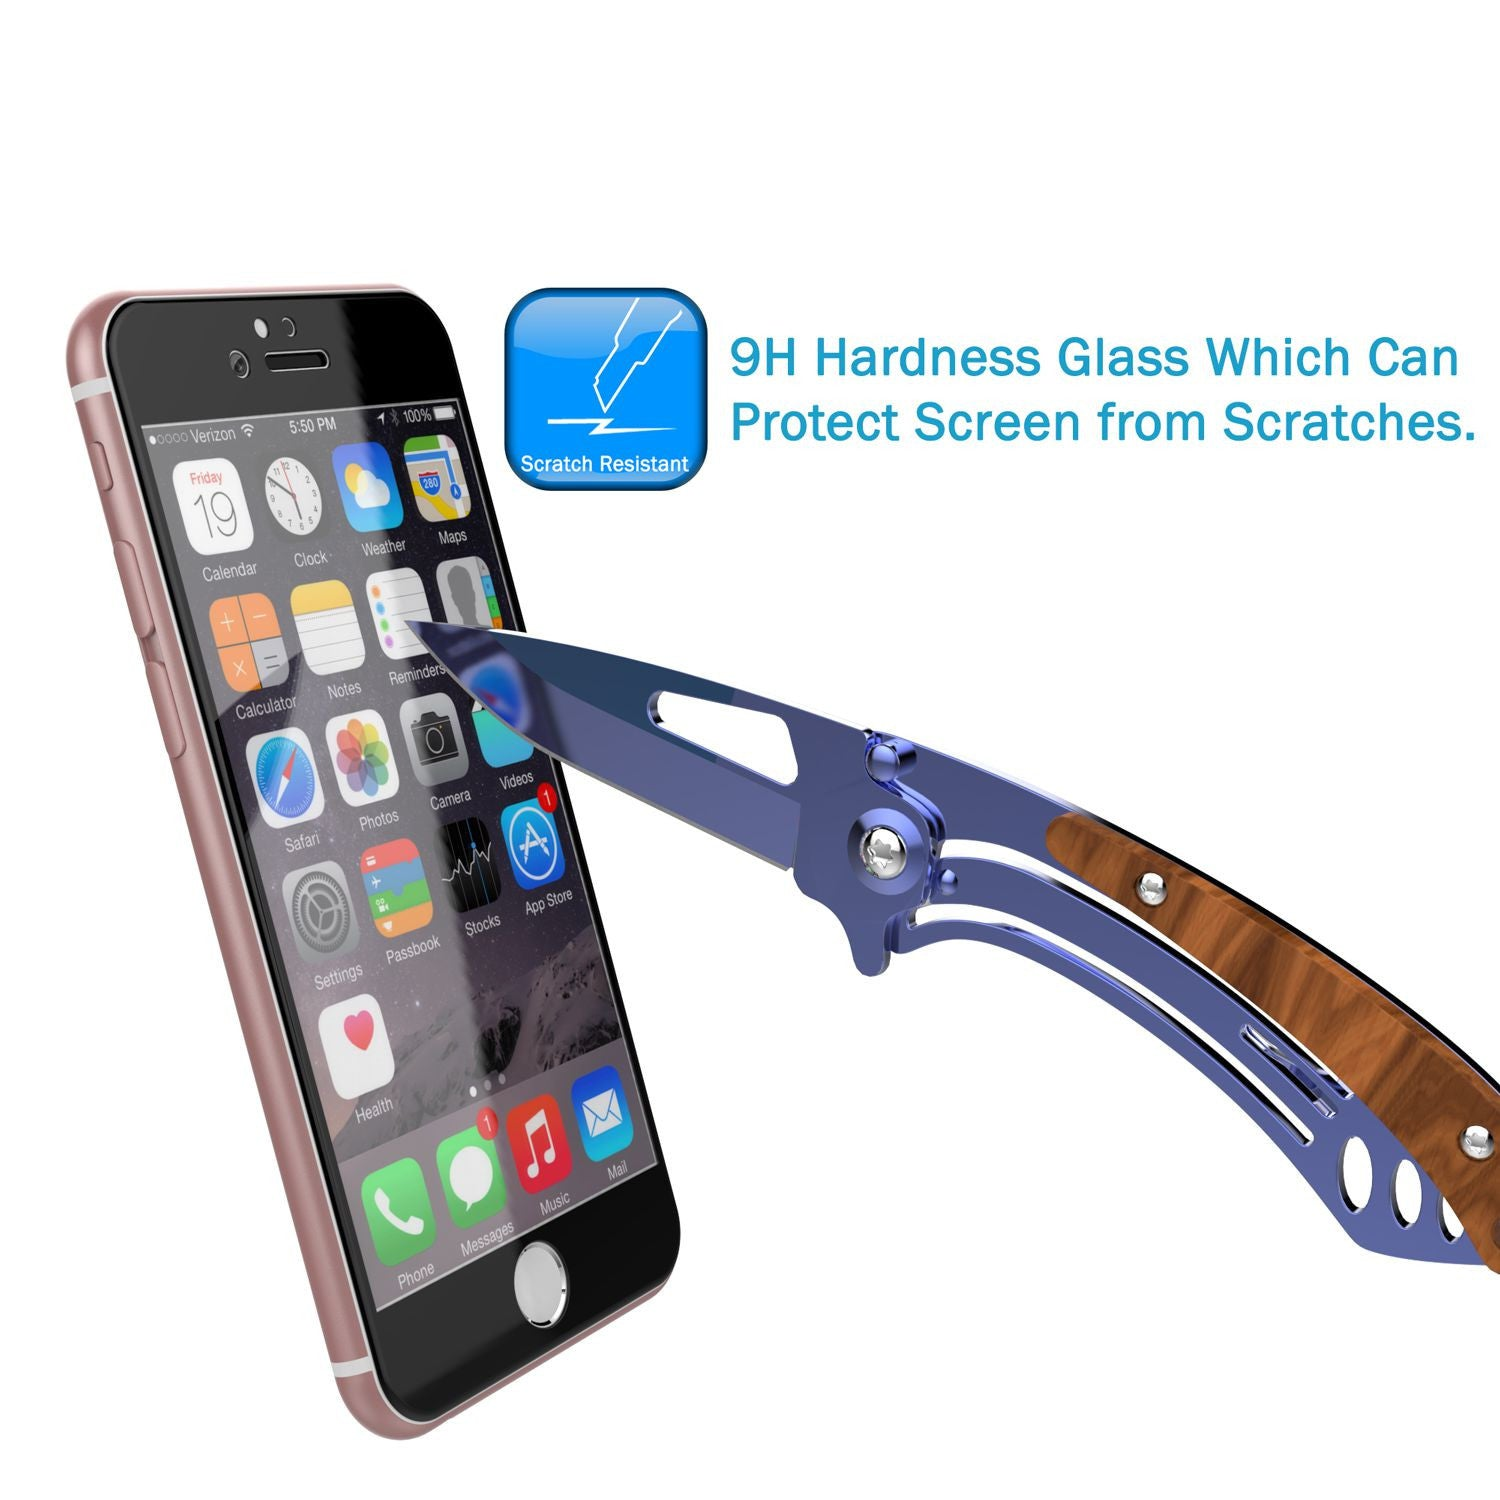 iPhone 6+/6s+ Plus  Black Screen Protector, Punkcase SHIELD Tempered Glass Protector 0.33mm Thick 9H